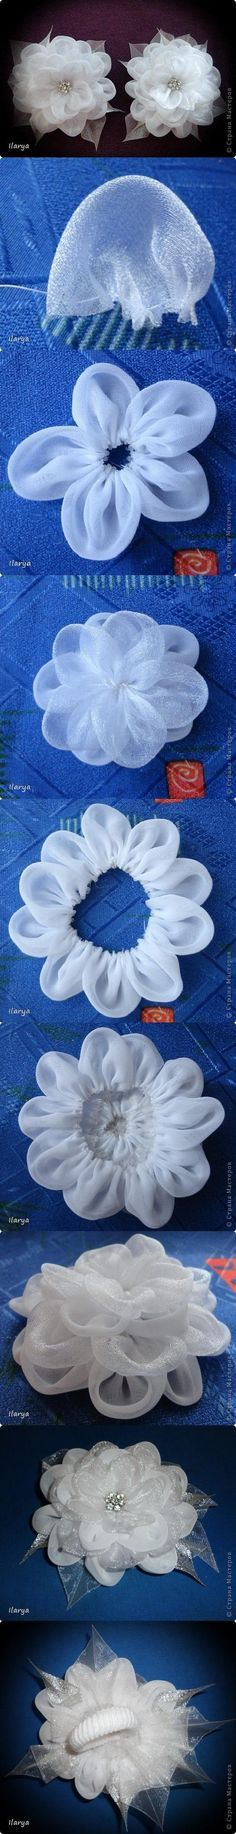 This pic doesn't do the finished product justice, lovely flower with clear step by step pics.